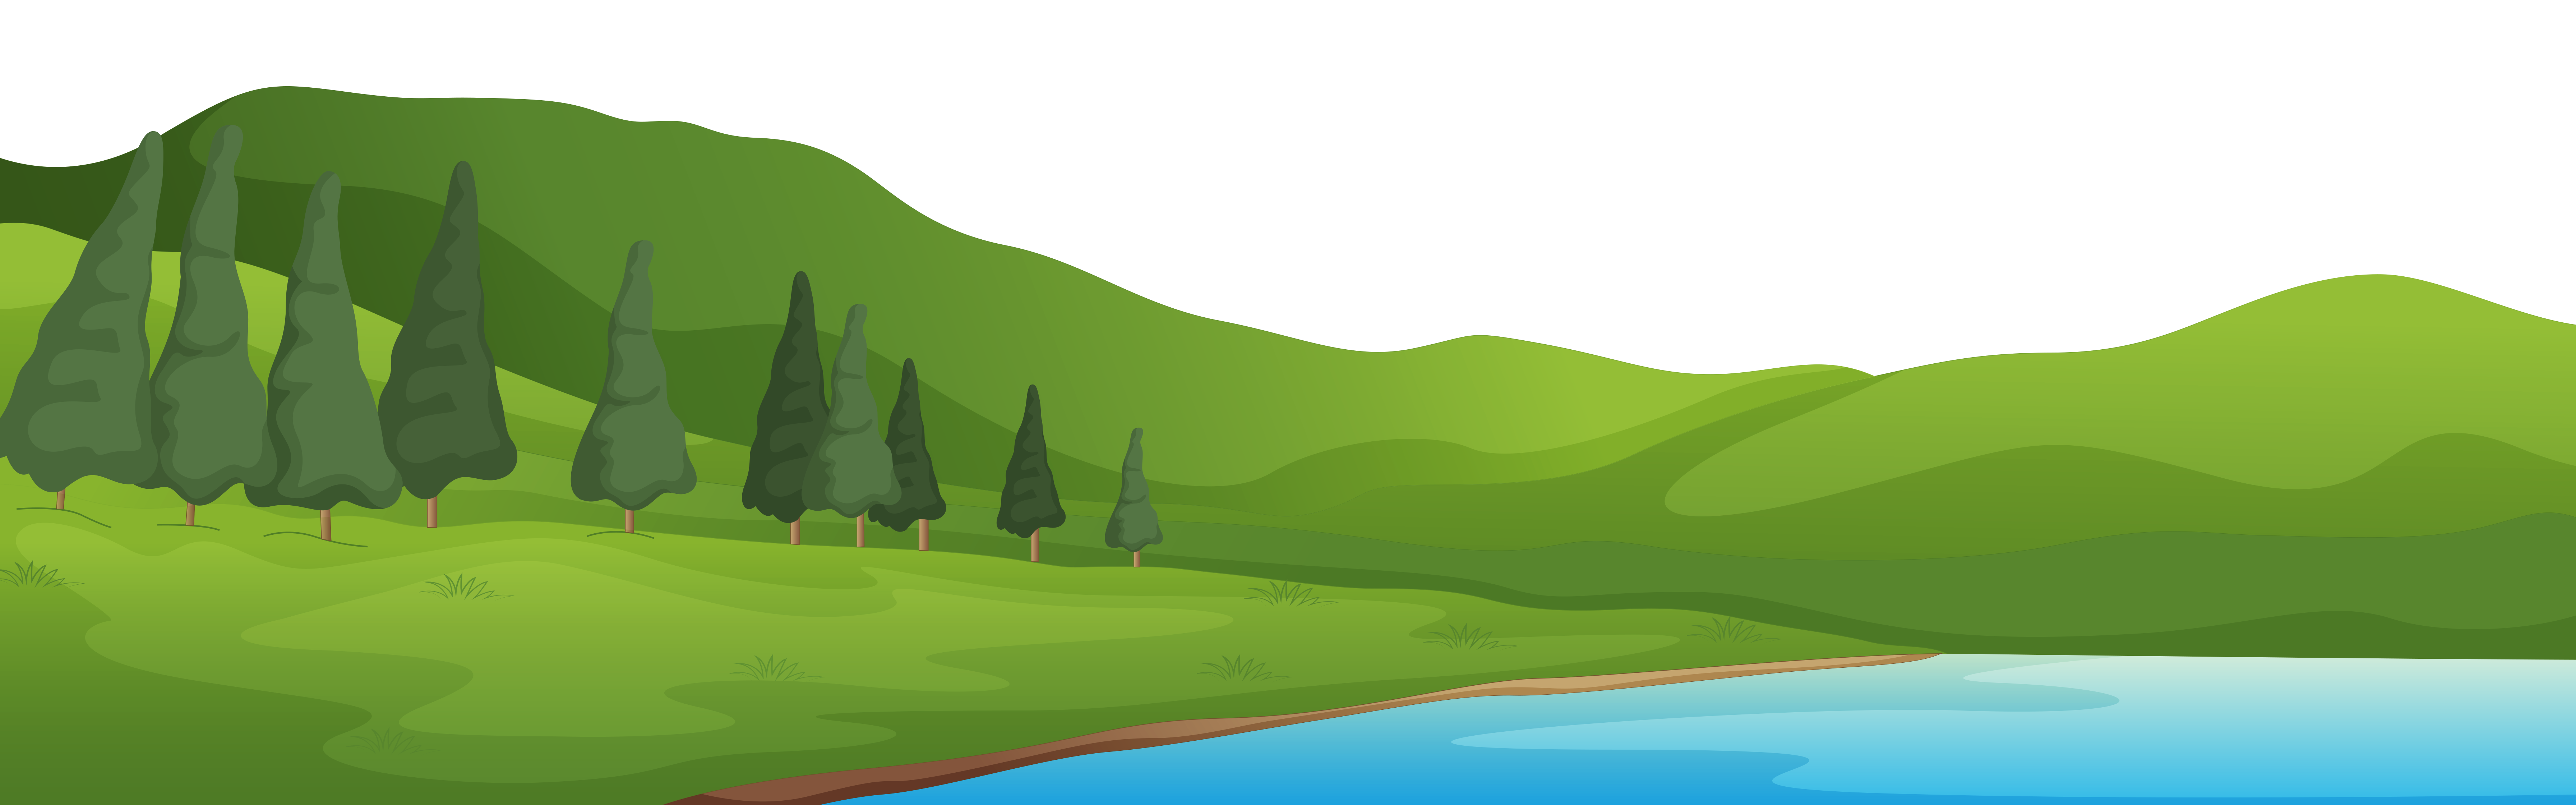 clipart mountains